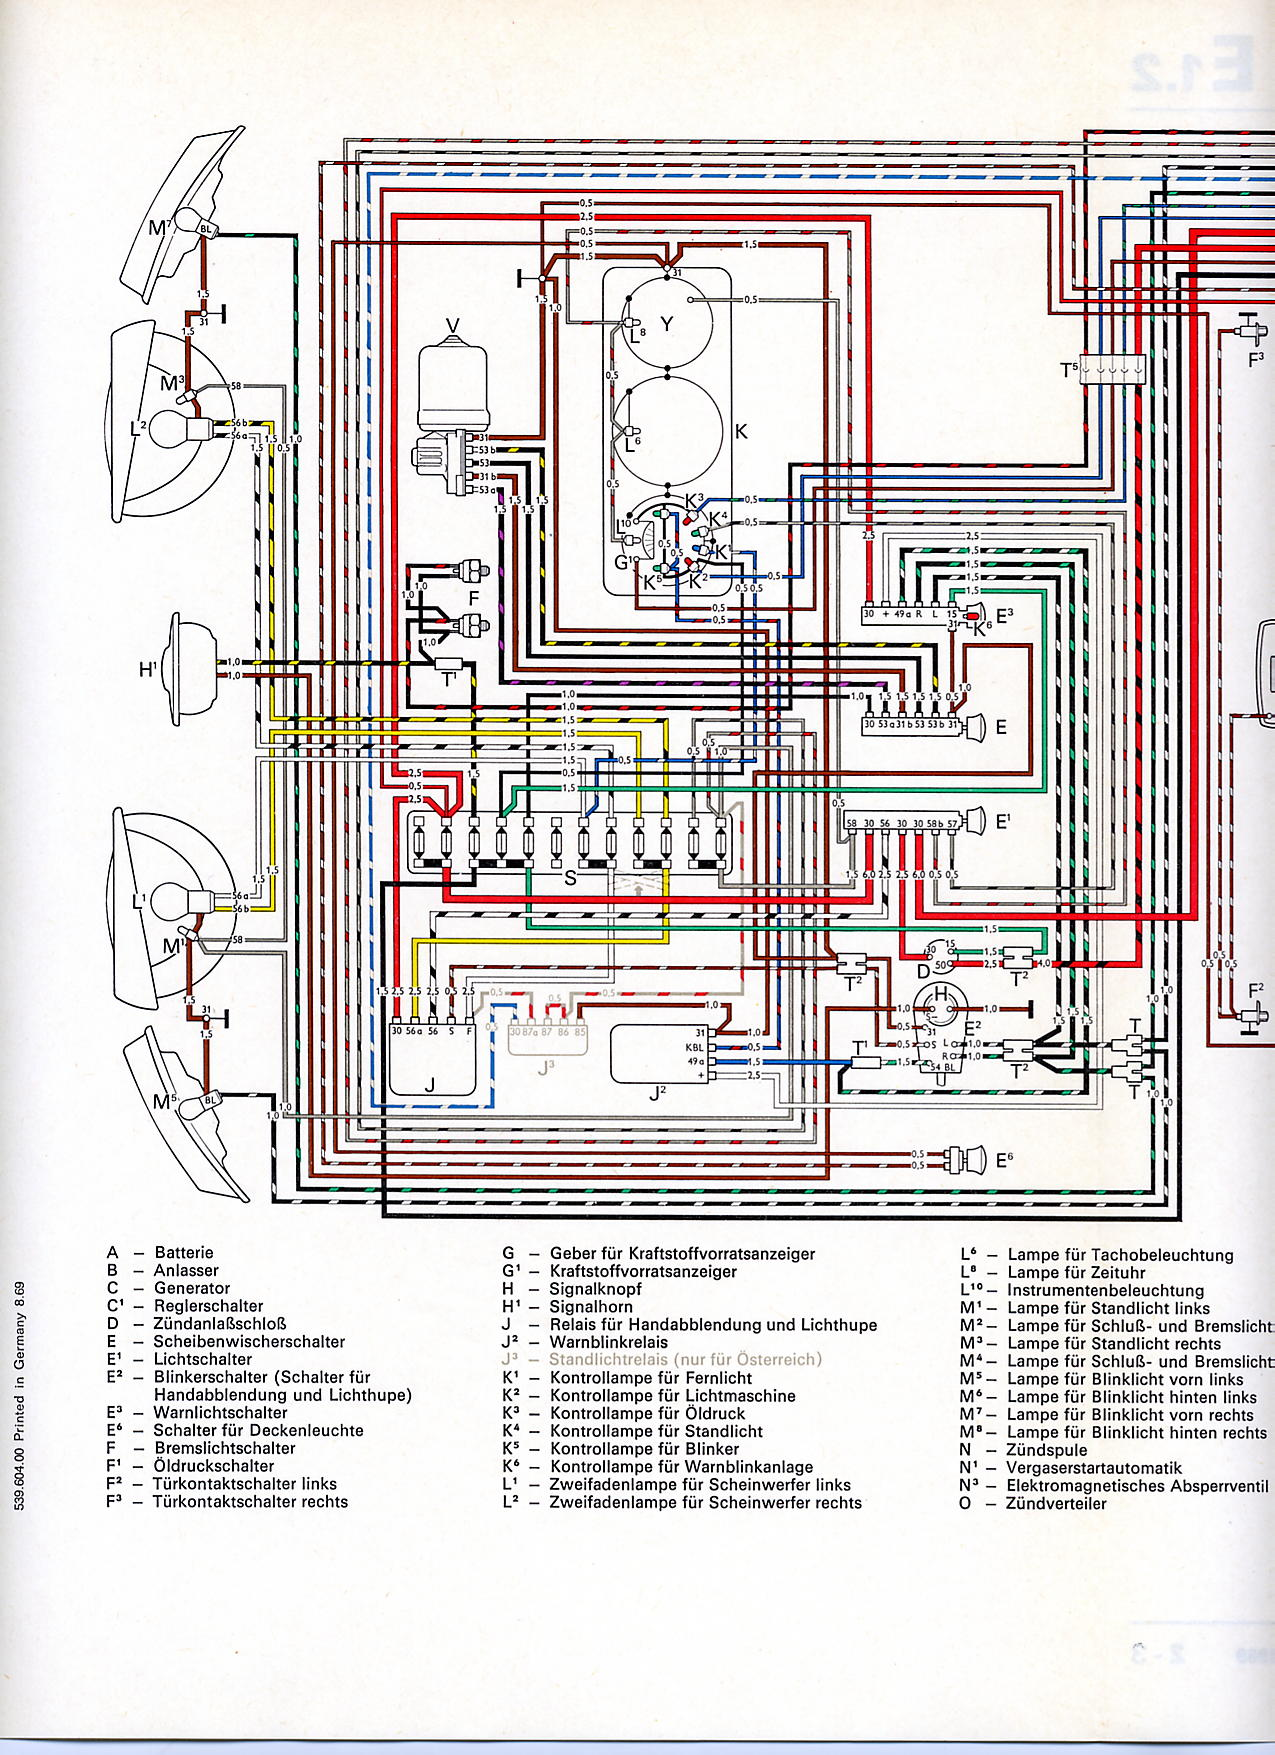 Bay Window Bus View Topic No Low Beam Headlights 1971 Vw Beetle Turn Signal Wiring Diagram Euro Image May Have Been Reduced In Size Click To Fullscreen